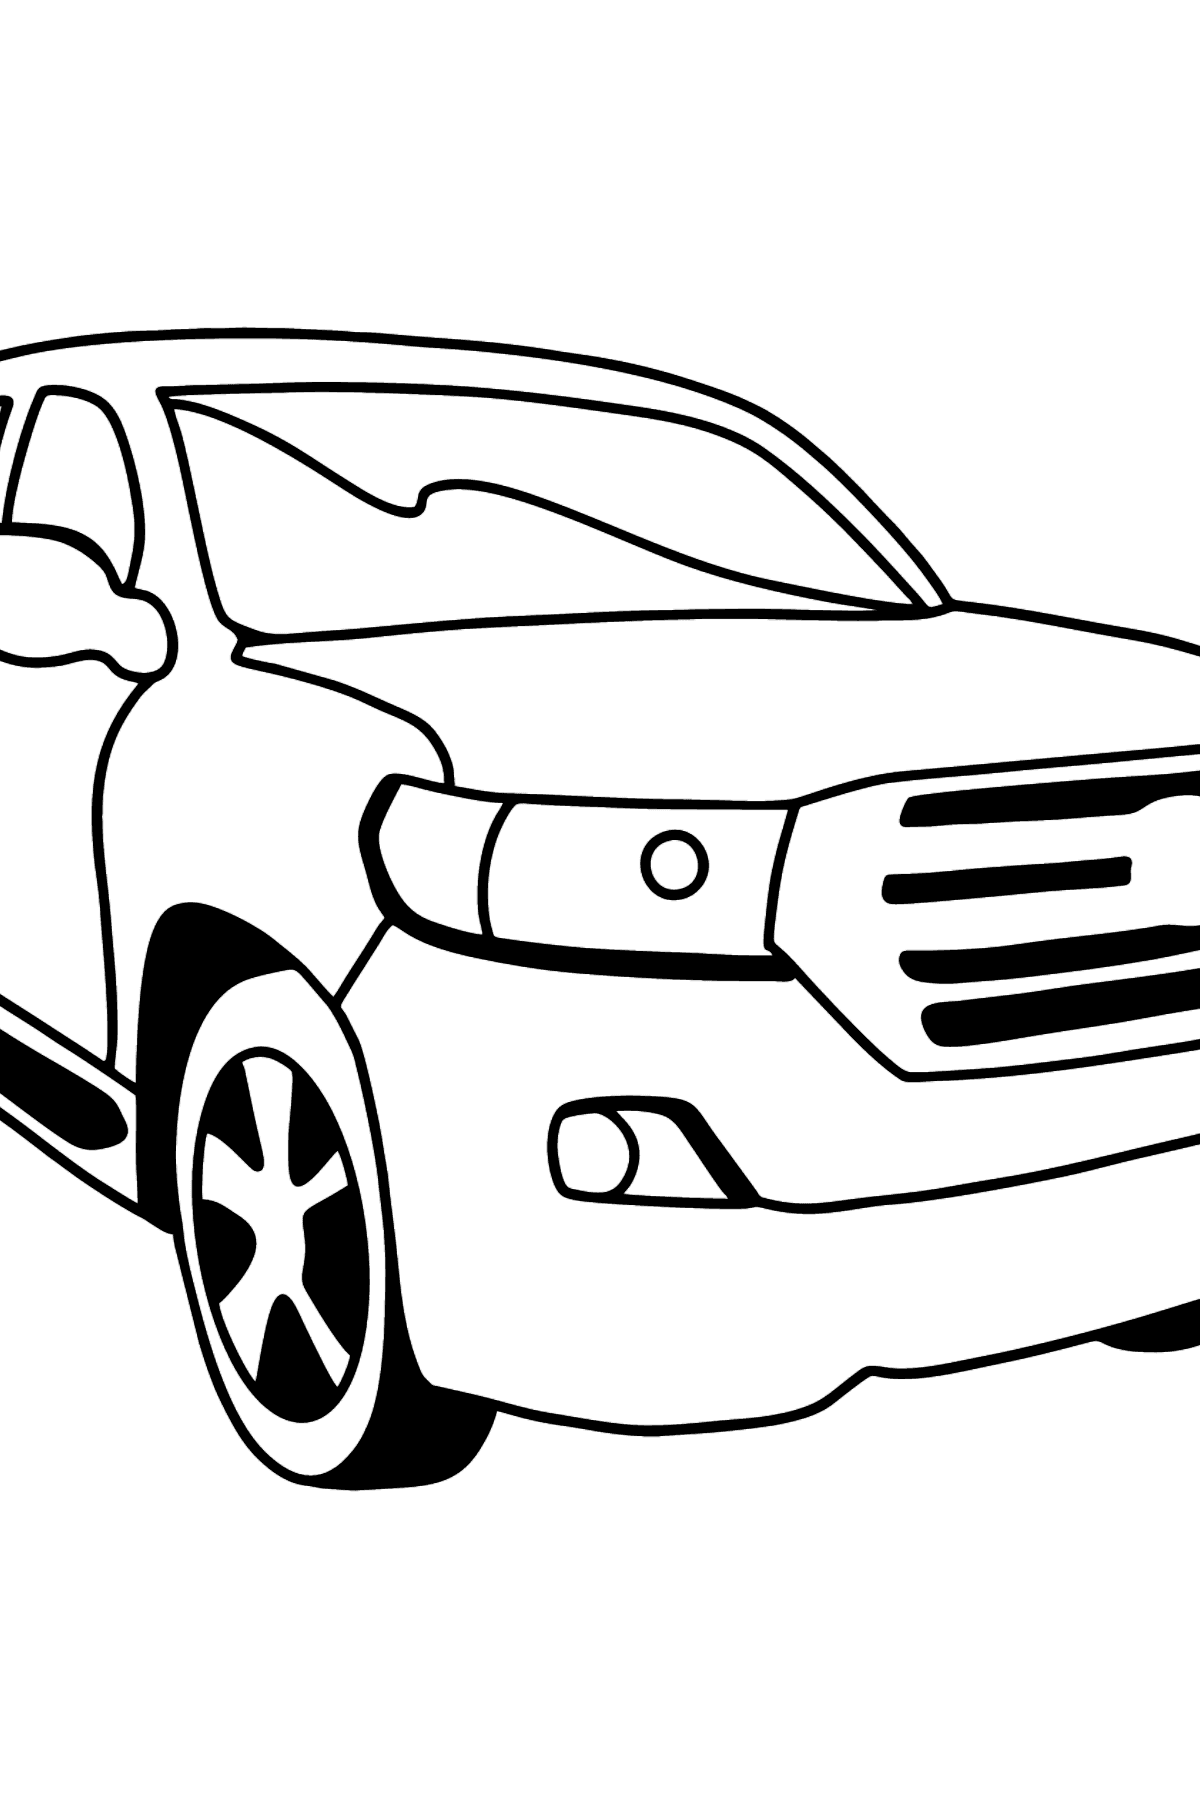 Toyota Land Cruiser Car coloring page - Coloring Pages for Kids